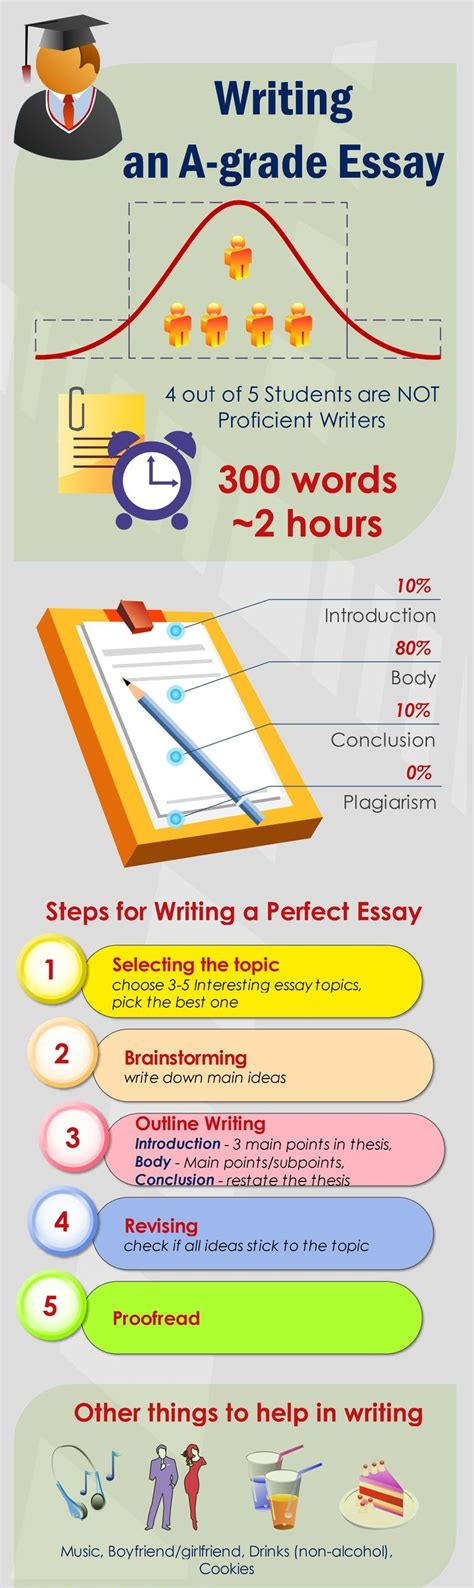 dissertation writing tips academic help page 2 intel writers